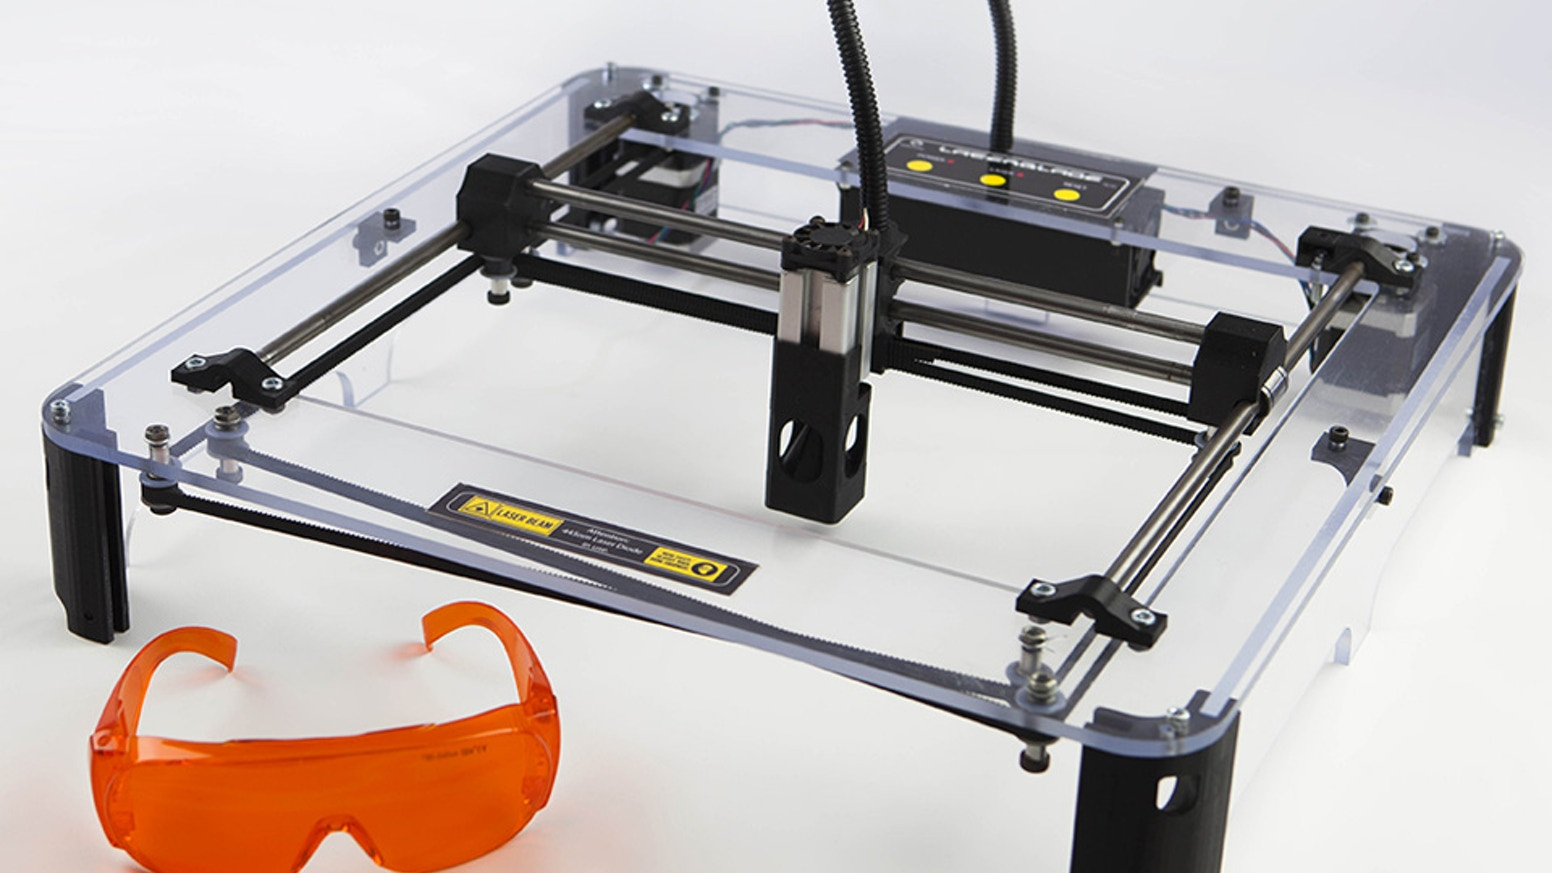 The affordable entry-level laser cutter / engraver for the maker, artist and hobbyist.